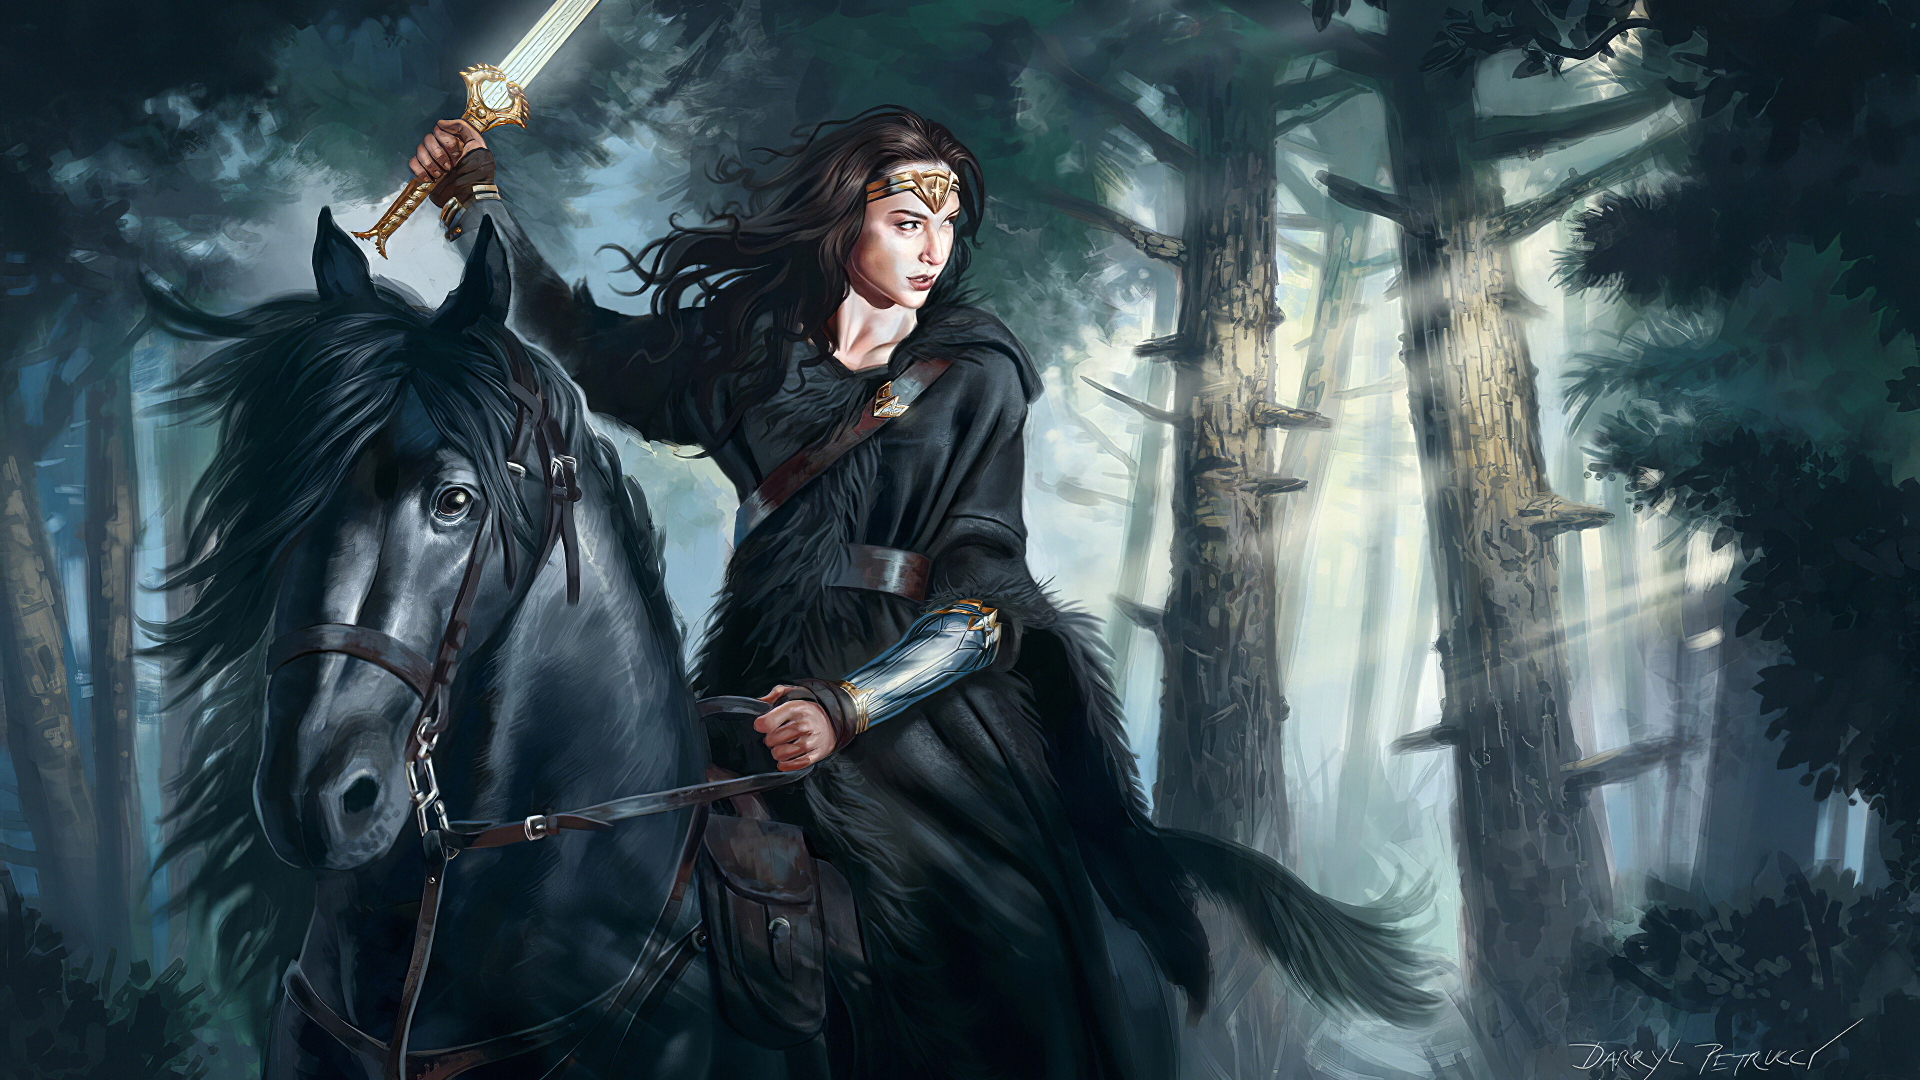 1920x1080 Wonder Woman Riding Horse 1080p Laptop Full Hd Wallpaper Hd Superheroes 4k Wallpapers Images Photos And Background